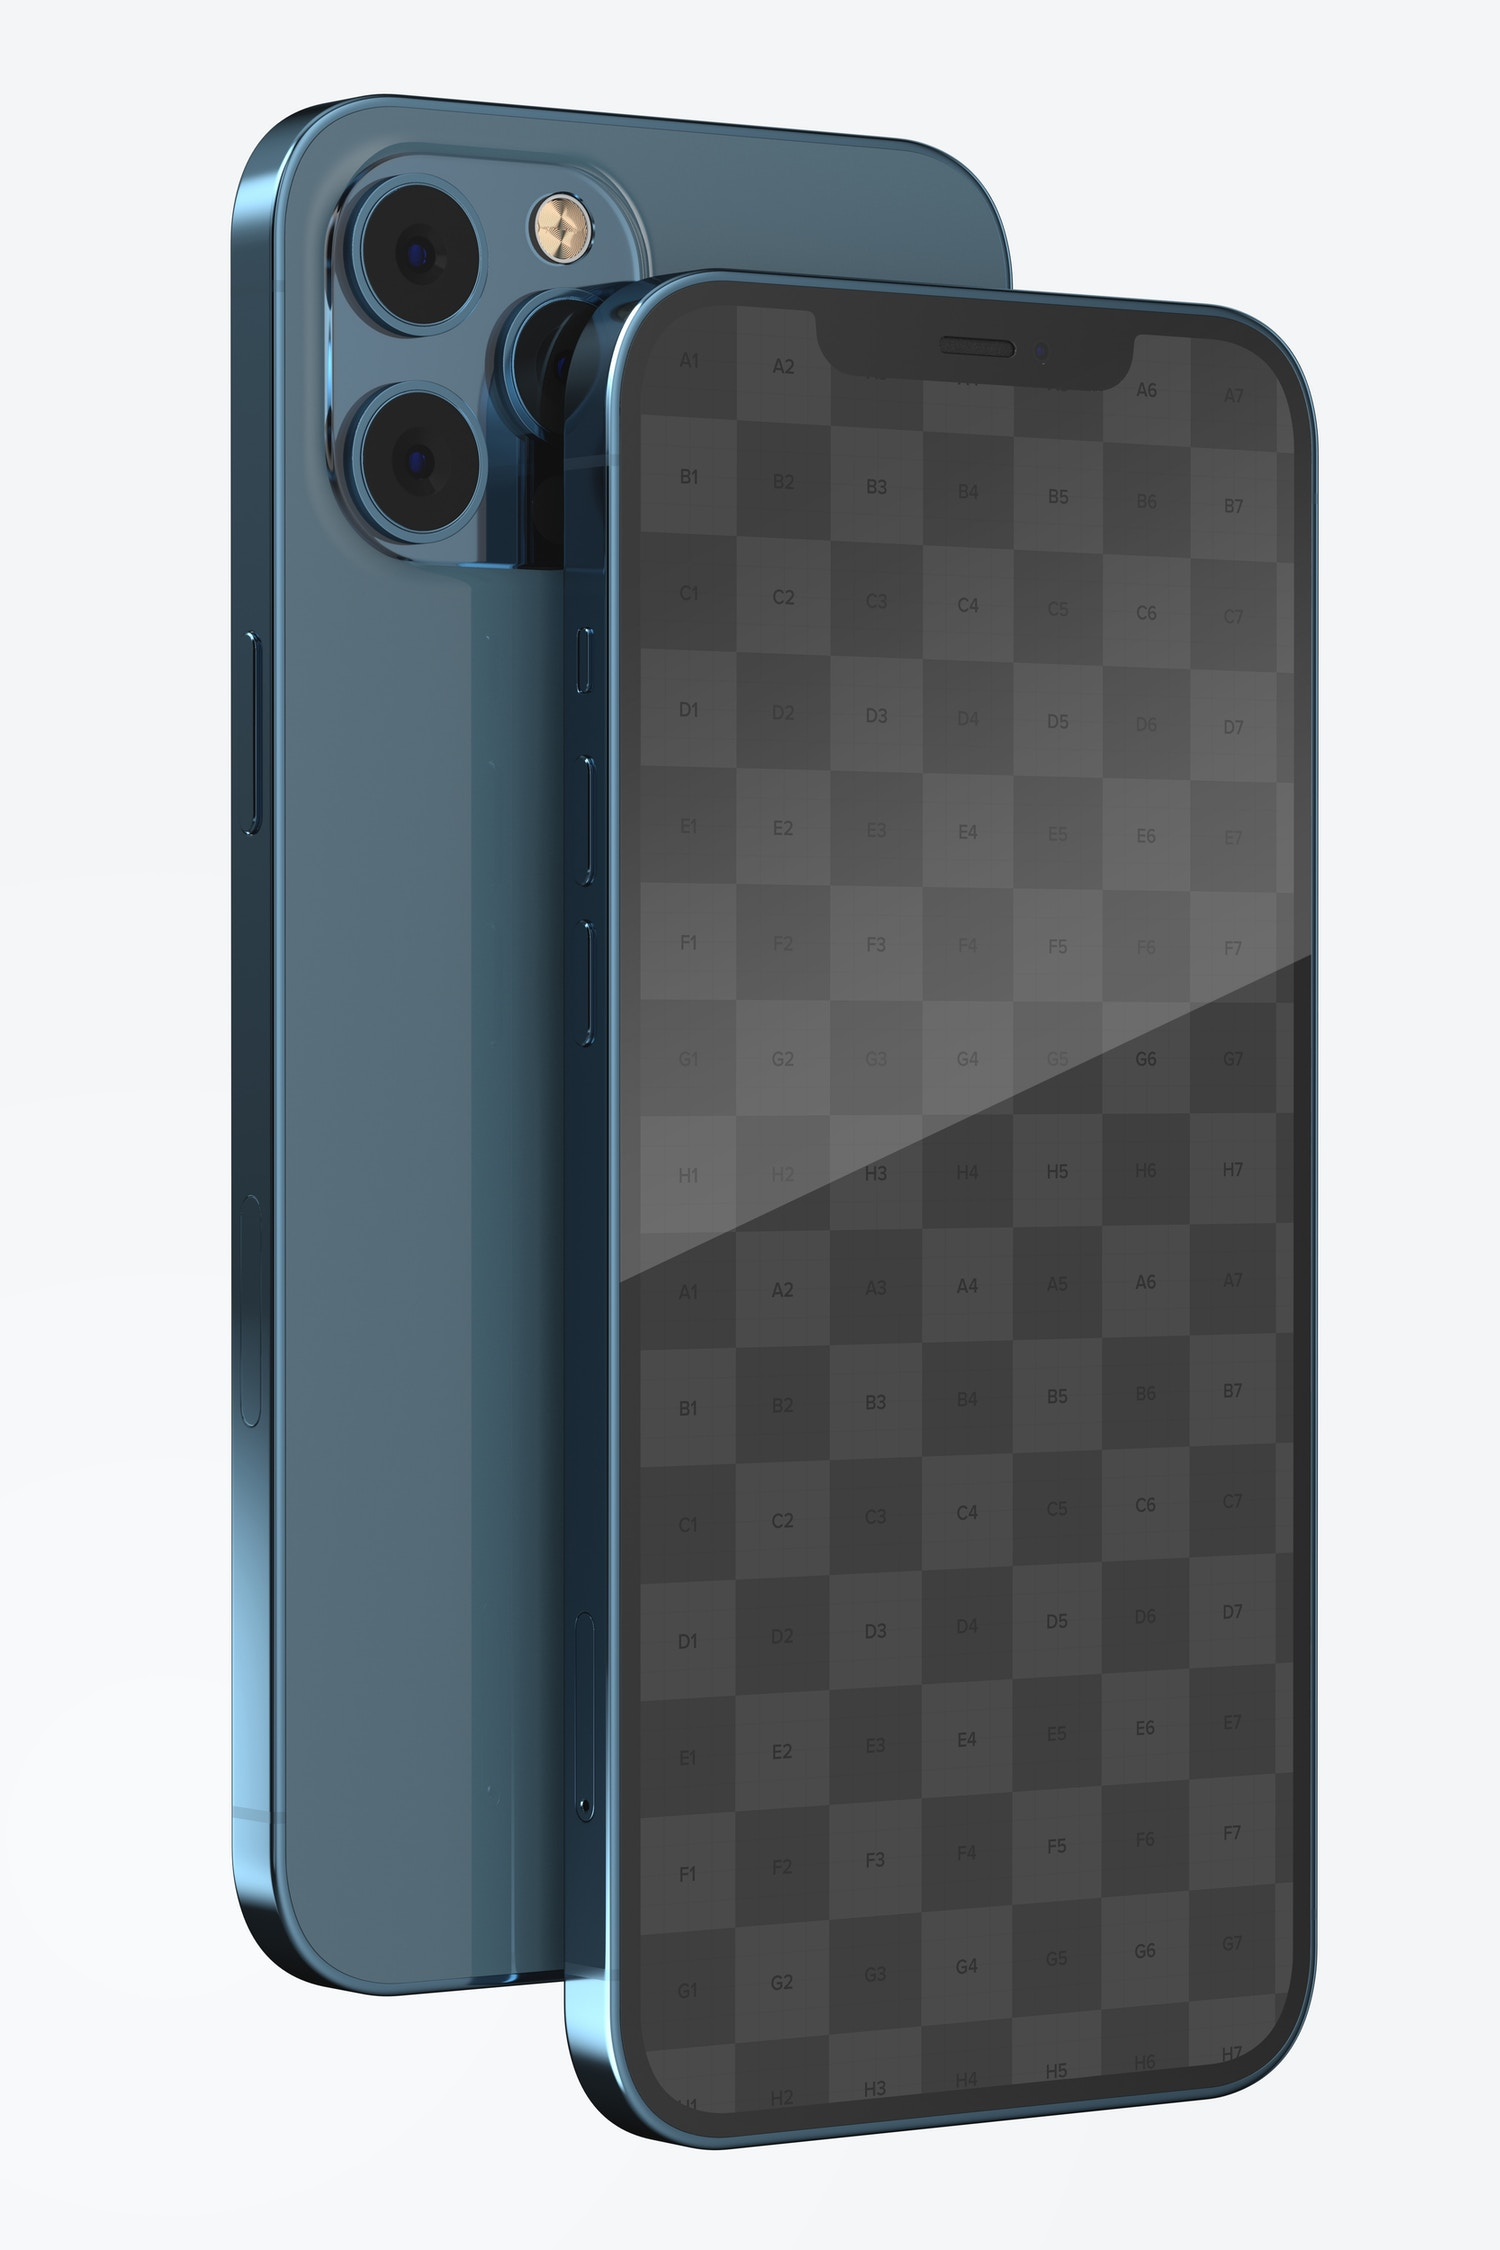 iPhone 12 Mockup, Front and Back View